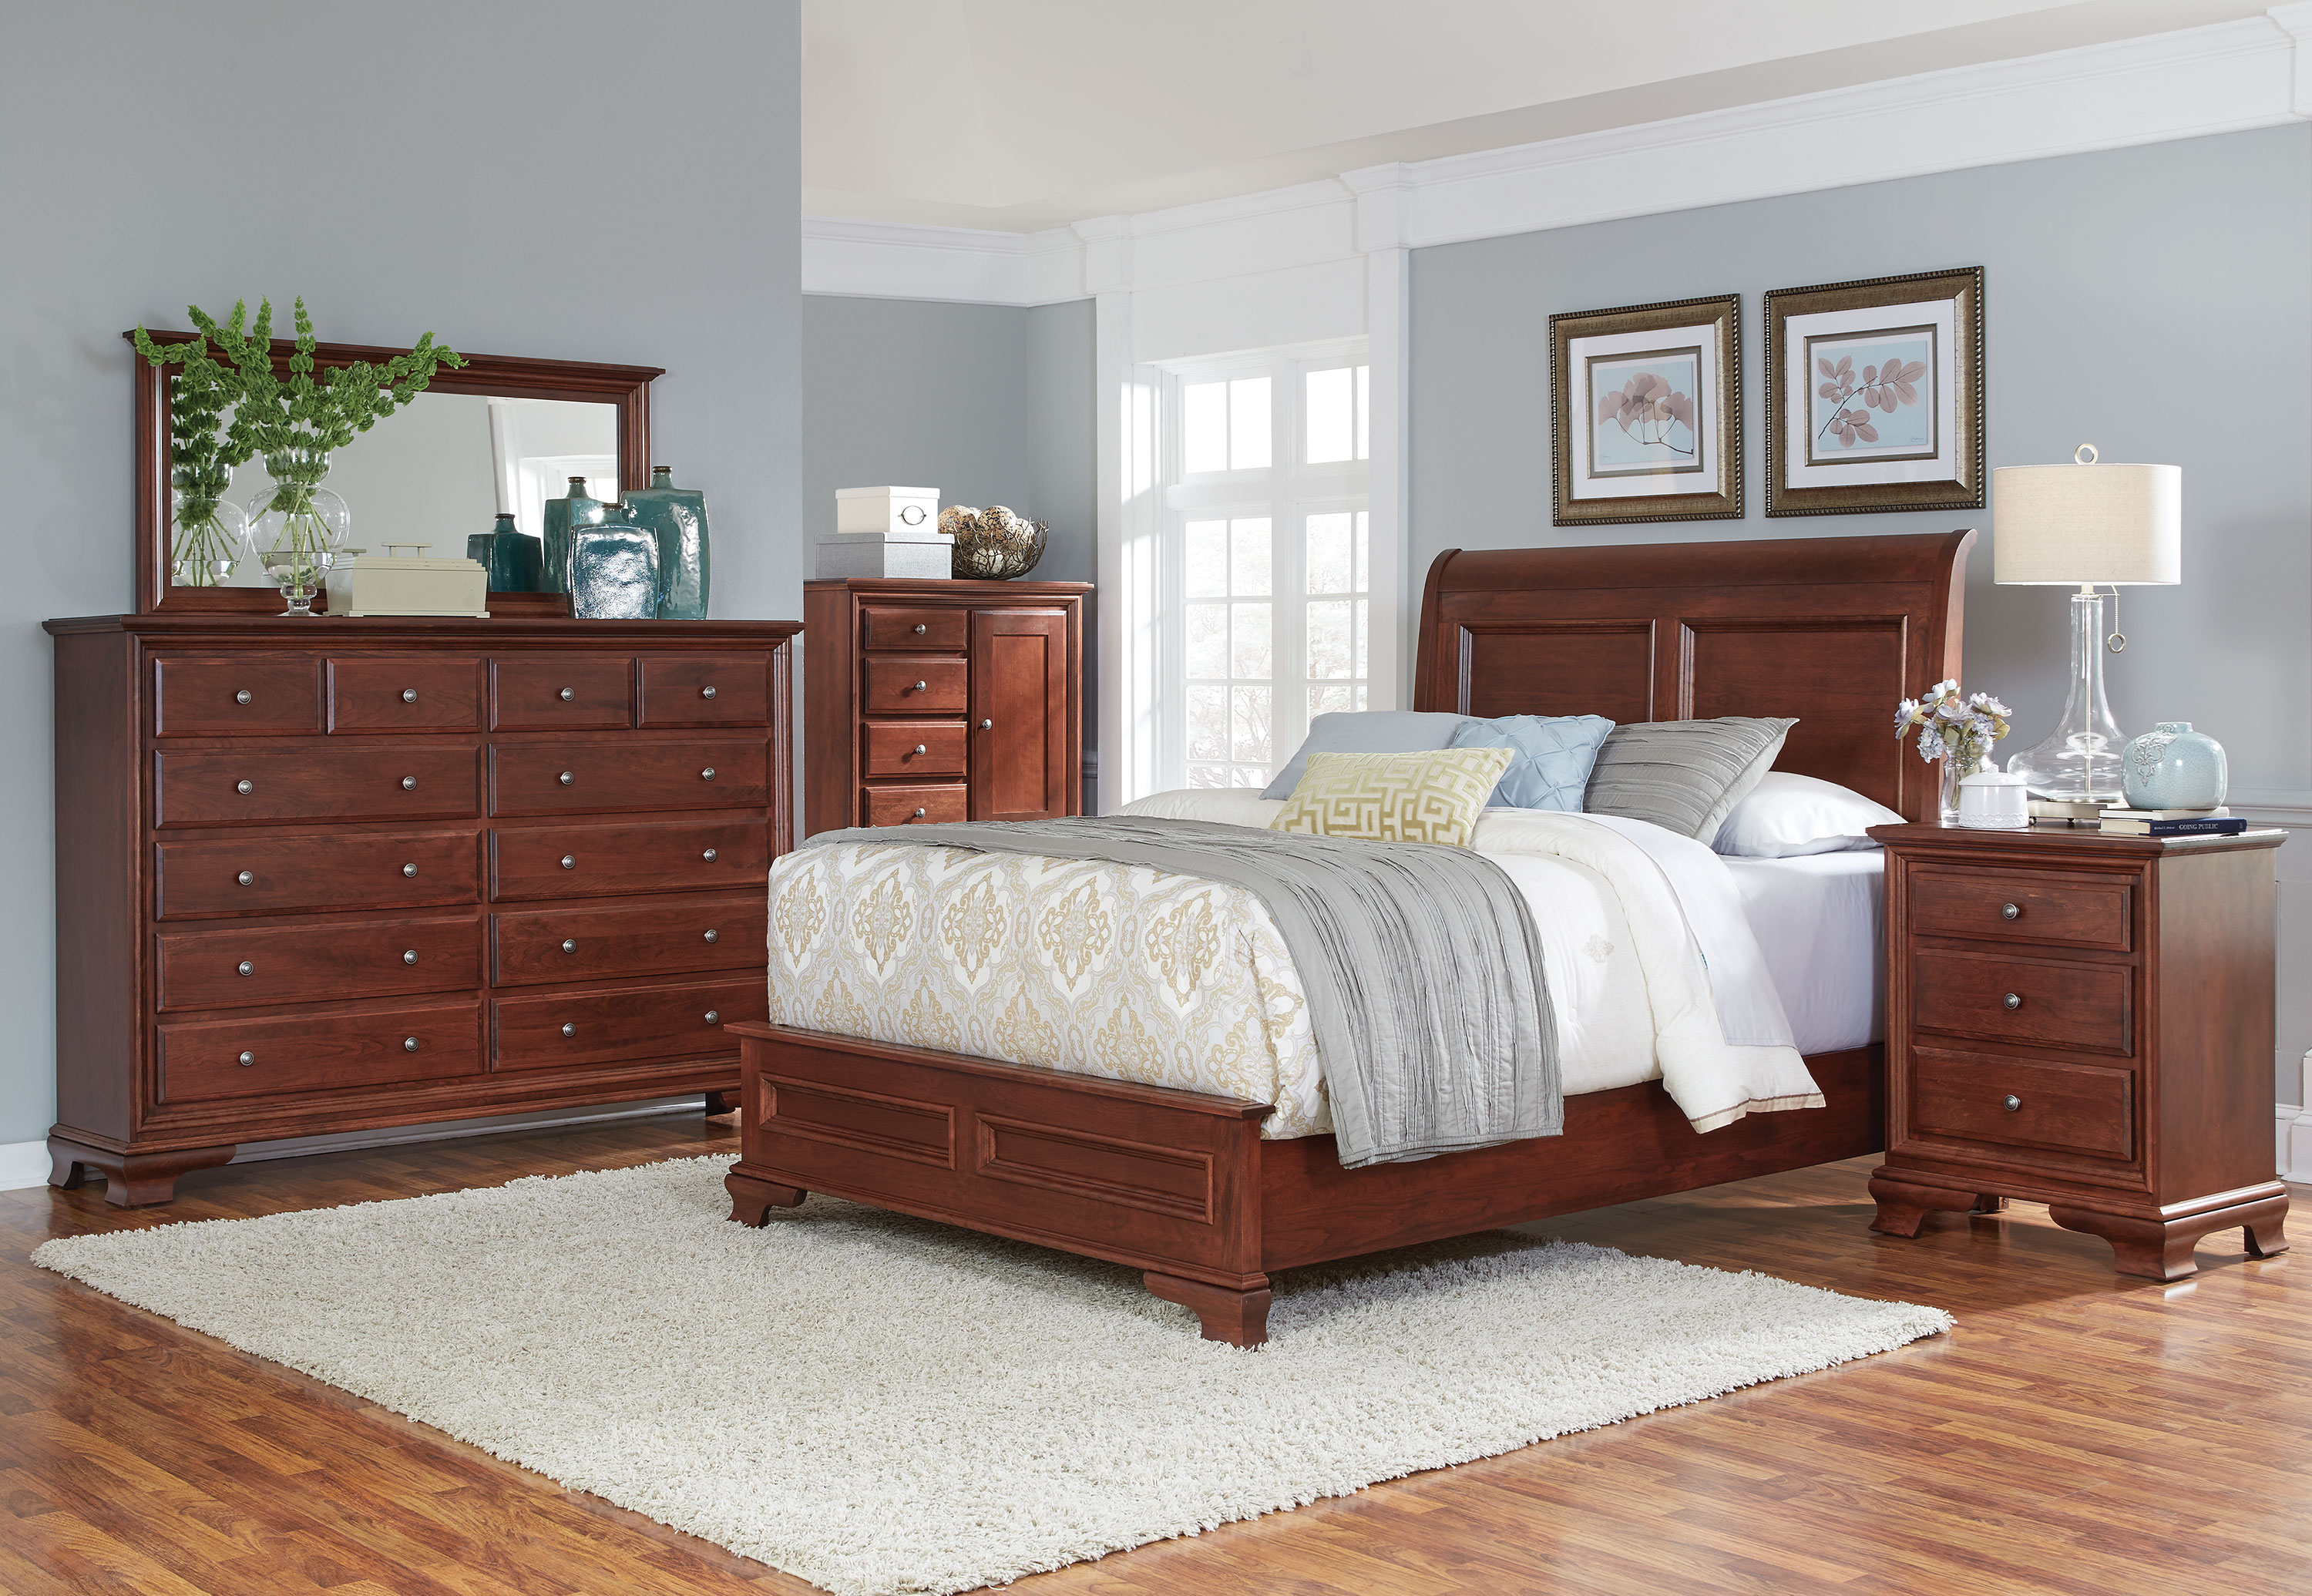 Amish Village Amish Classic 4 Piece King Bedroom | Levin ...